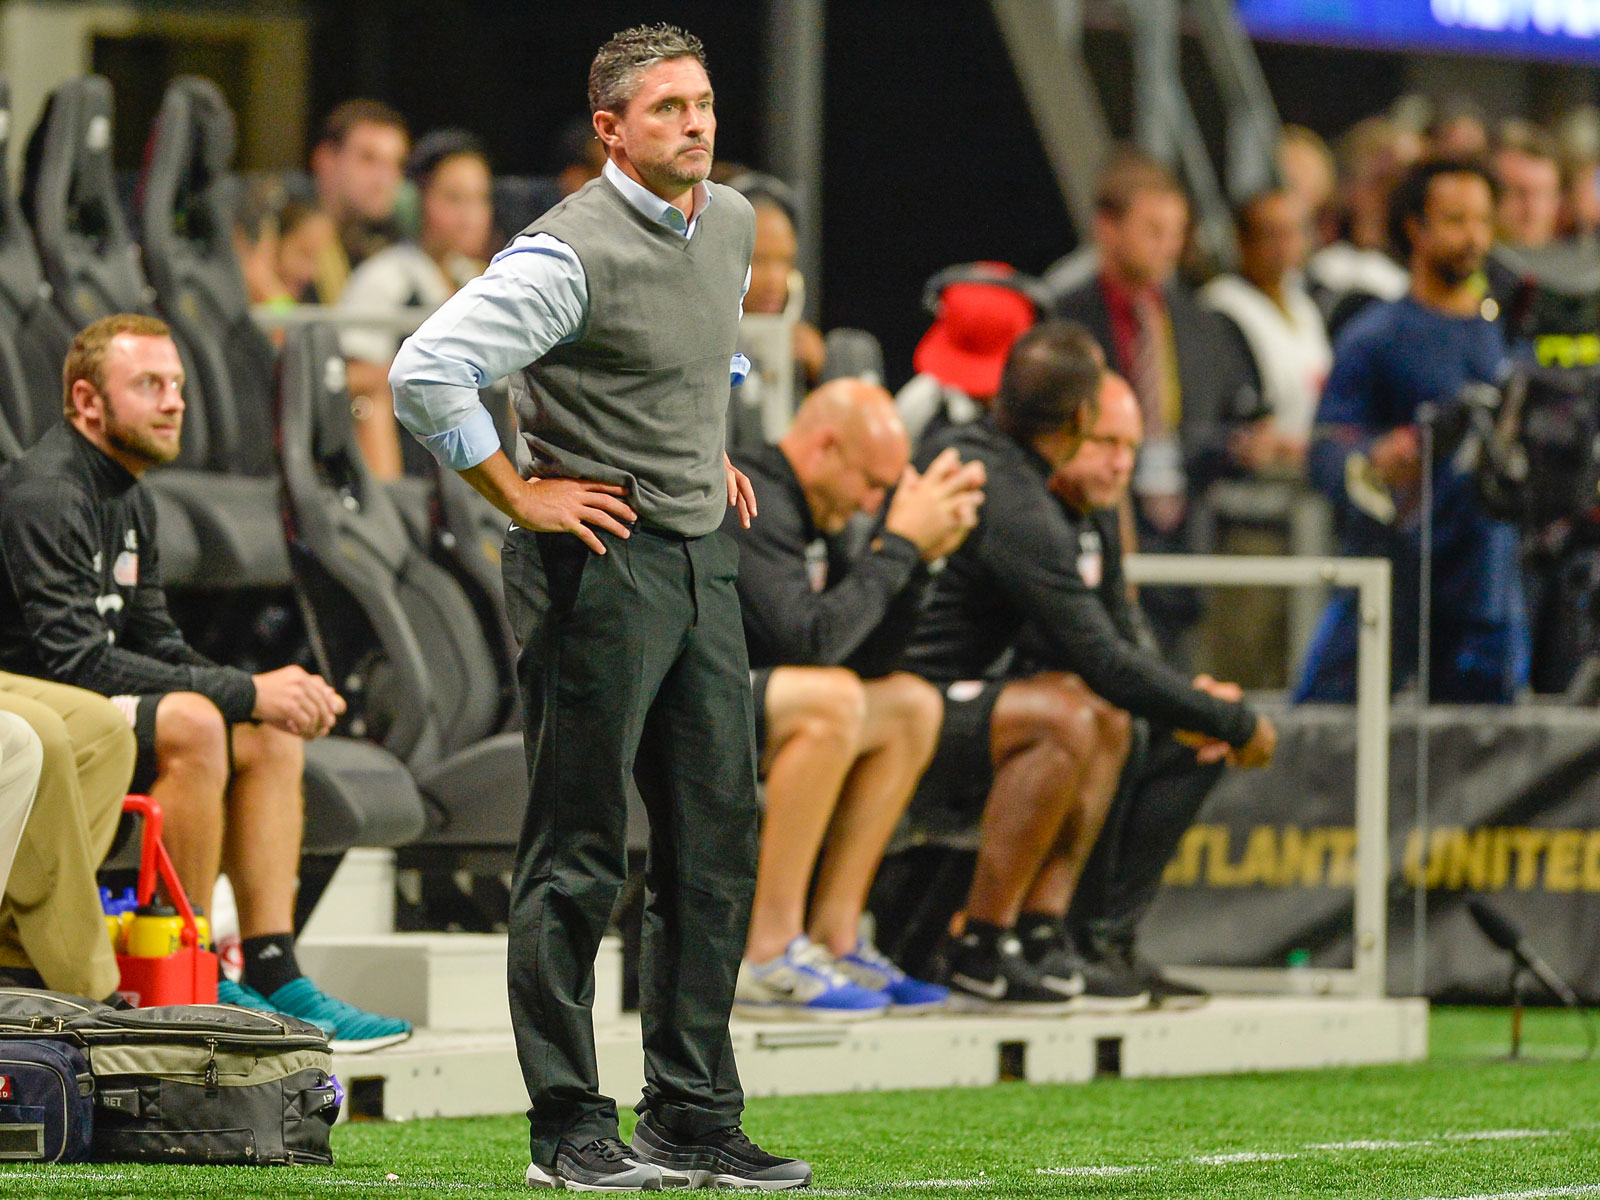 The New England Revolution fired manager Jay Heaps